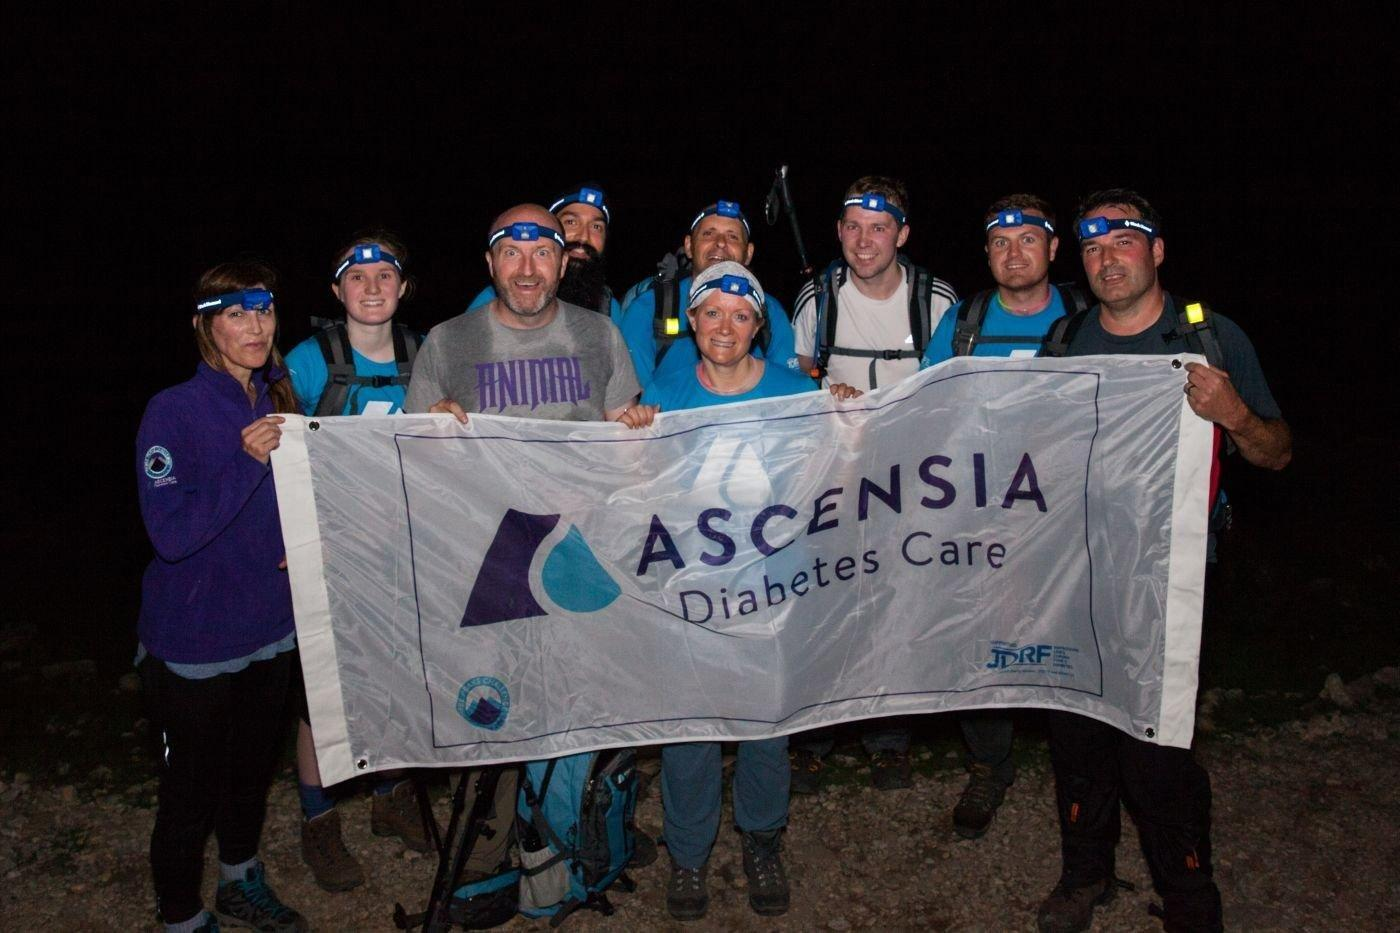 3 Peaks, 33 Participants 24 Hours: Ascensia Diabetes Care Staff Team Complete Three Peaks Challenge